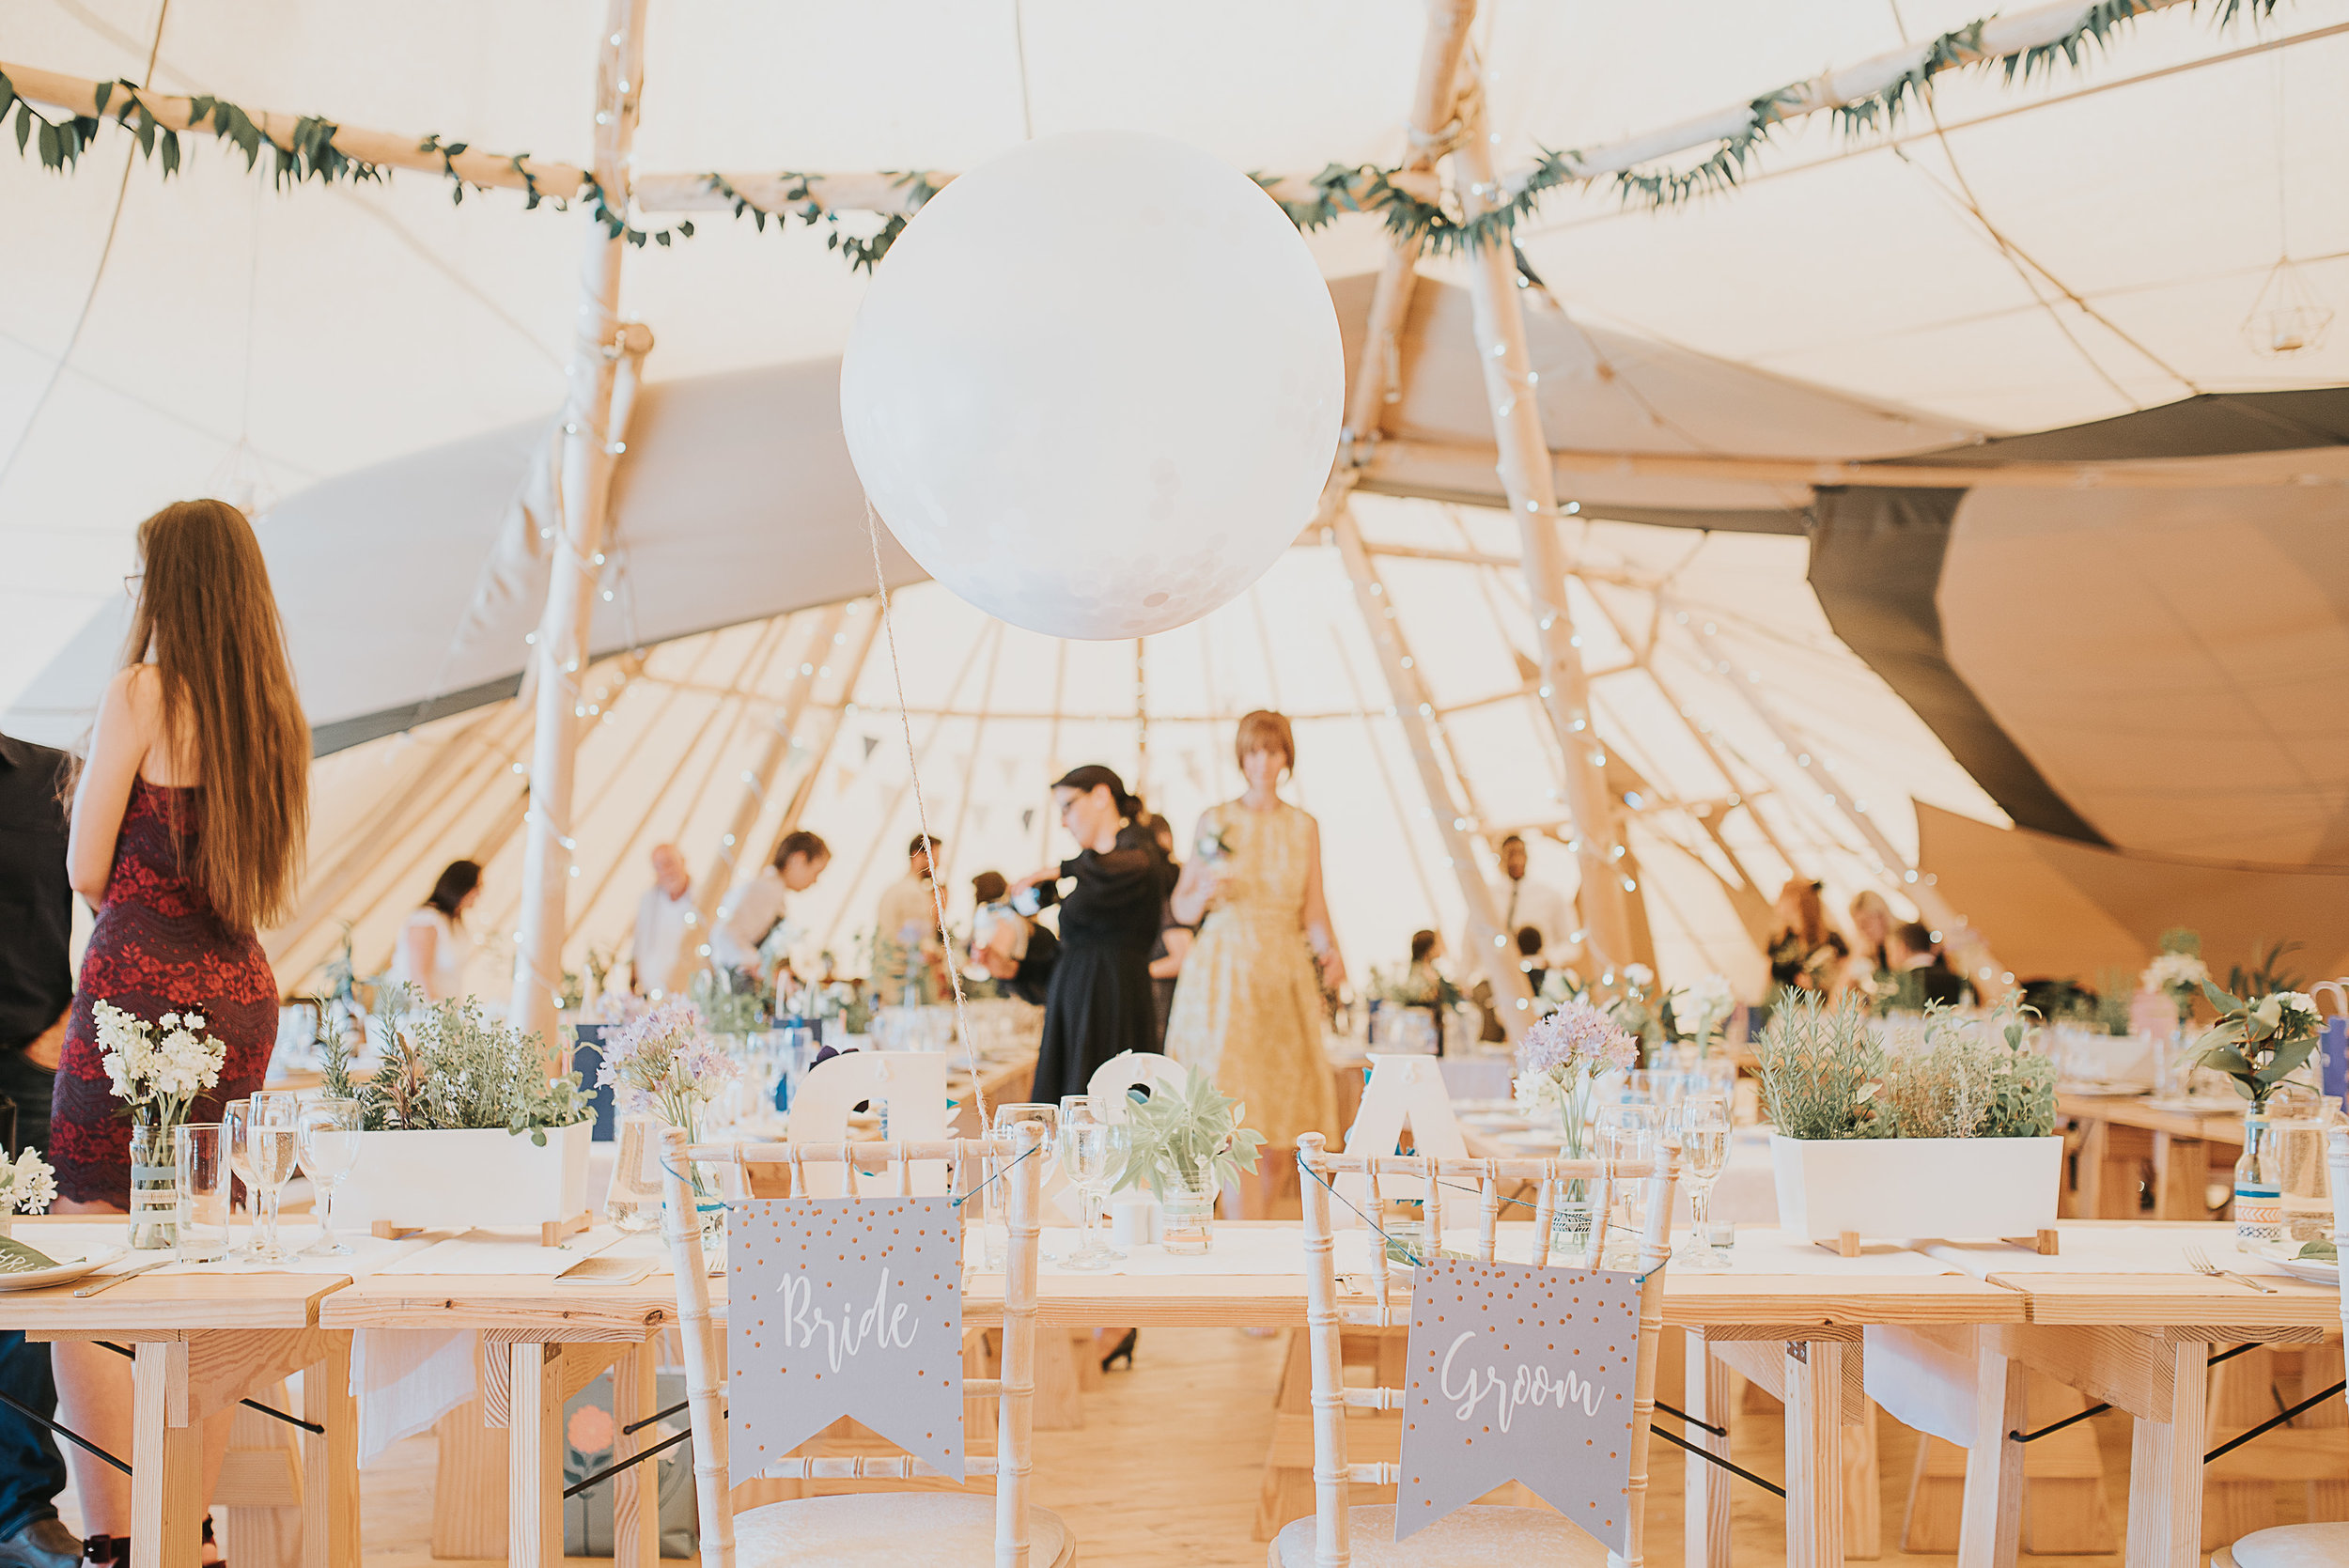 DECOR - Bunting,Hay Bales,Rustic 4ft Love Letters,Shepherd's Crooks & Lanterns,Festoon Lighting,Matted Walkways,Sweetie Carts,PalletsTable Plans,Chillout Package,Flowers,Centre Pieces,Vintage Suitcases,Wishing Wells andWooden Entrance Doors.